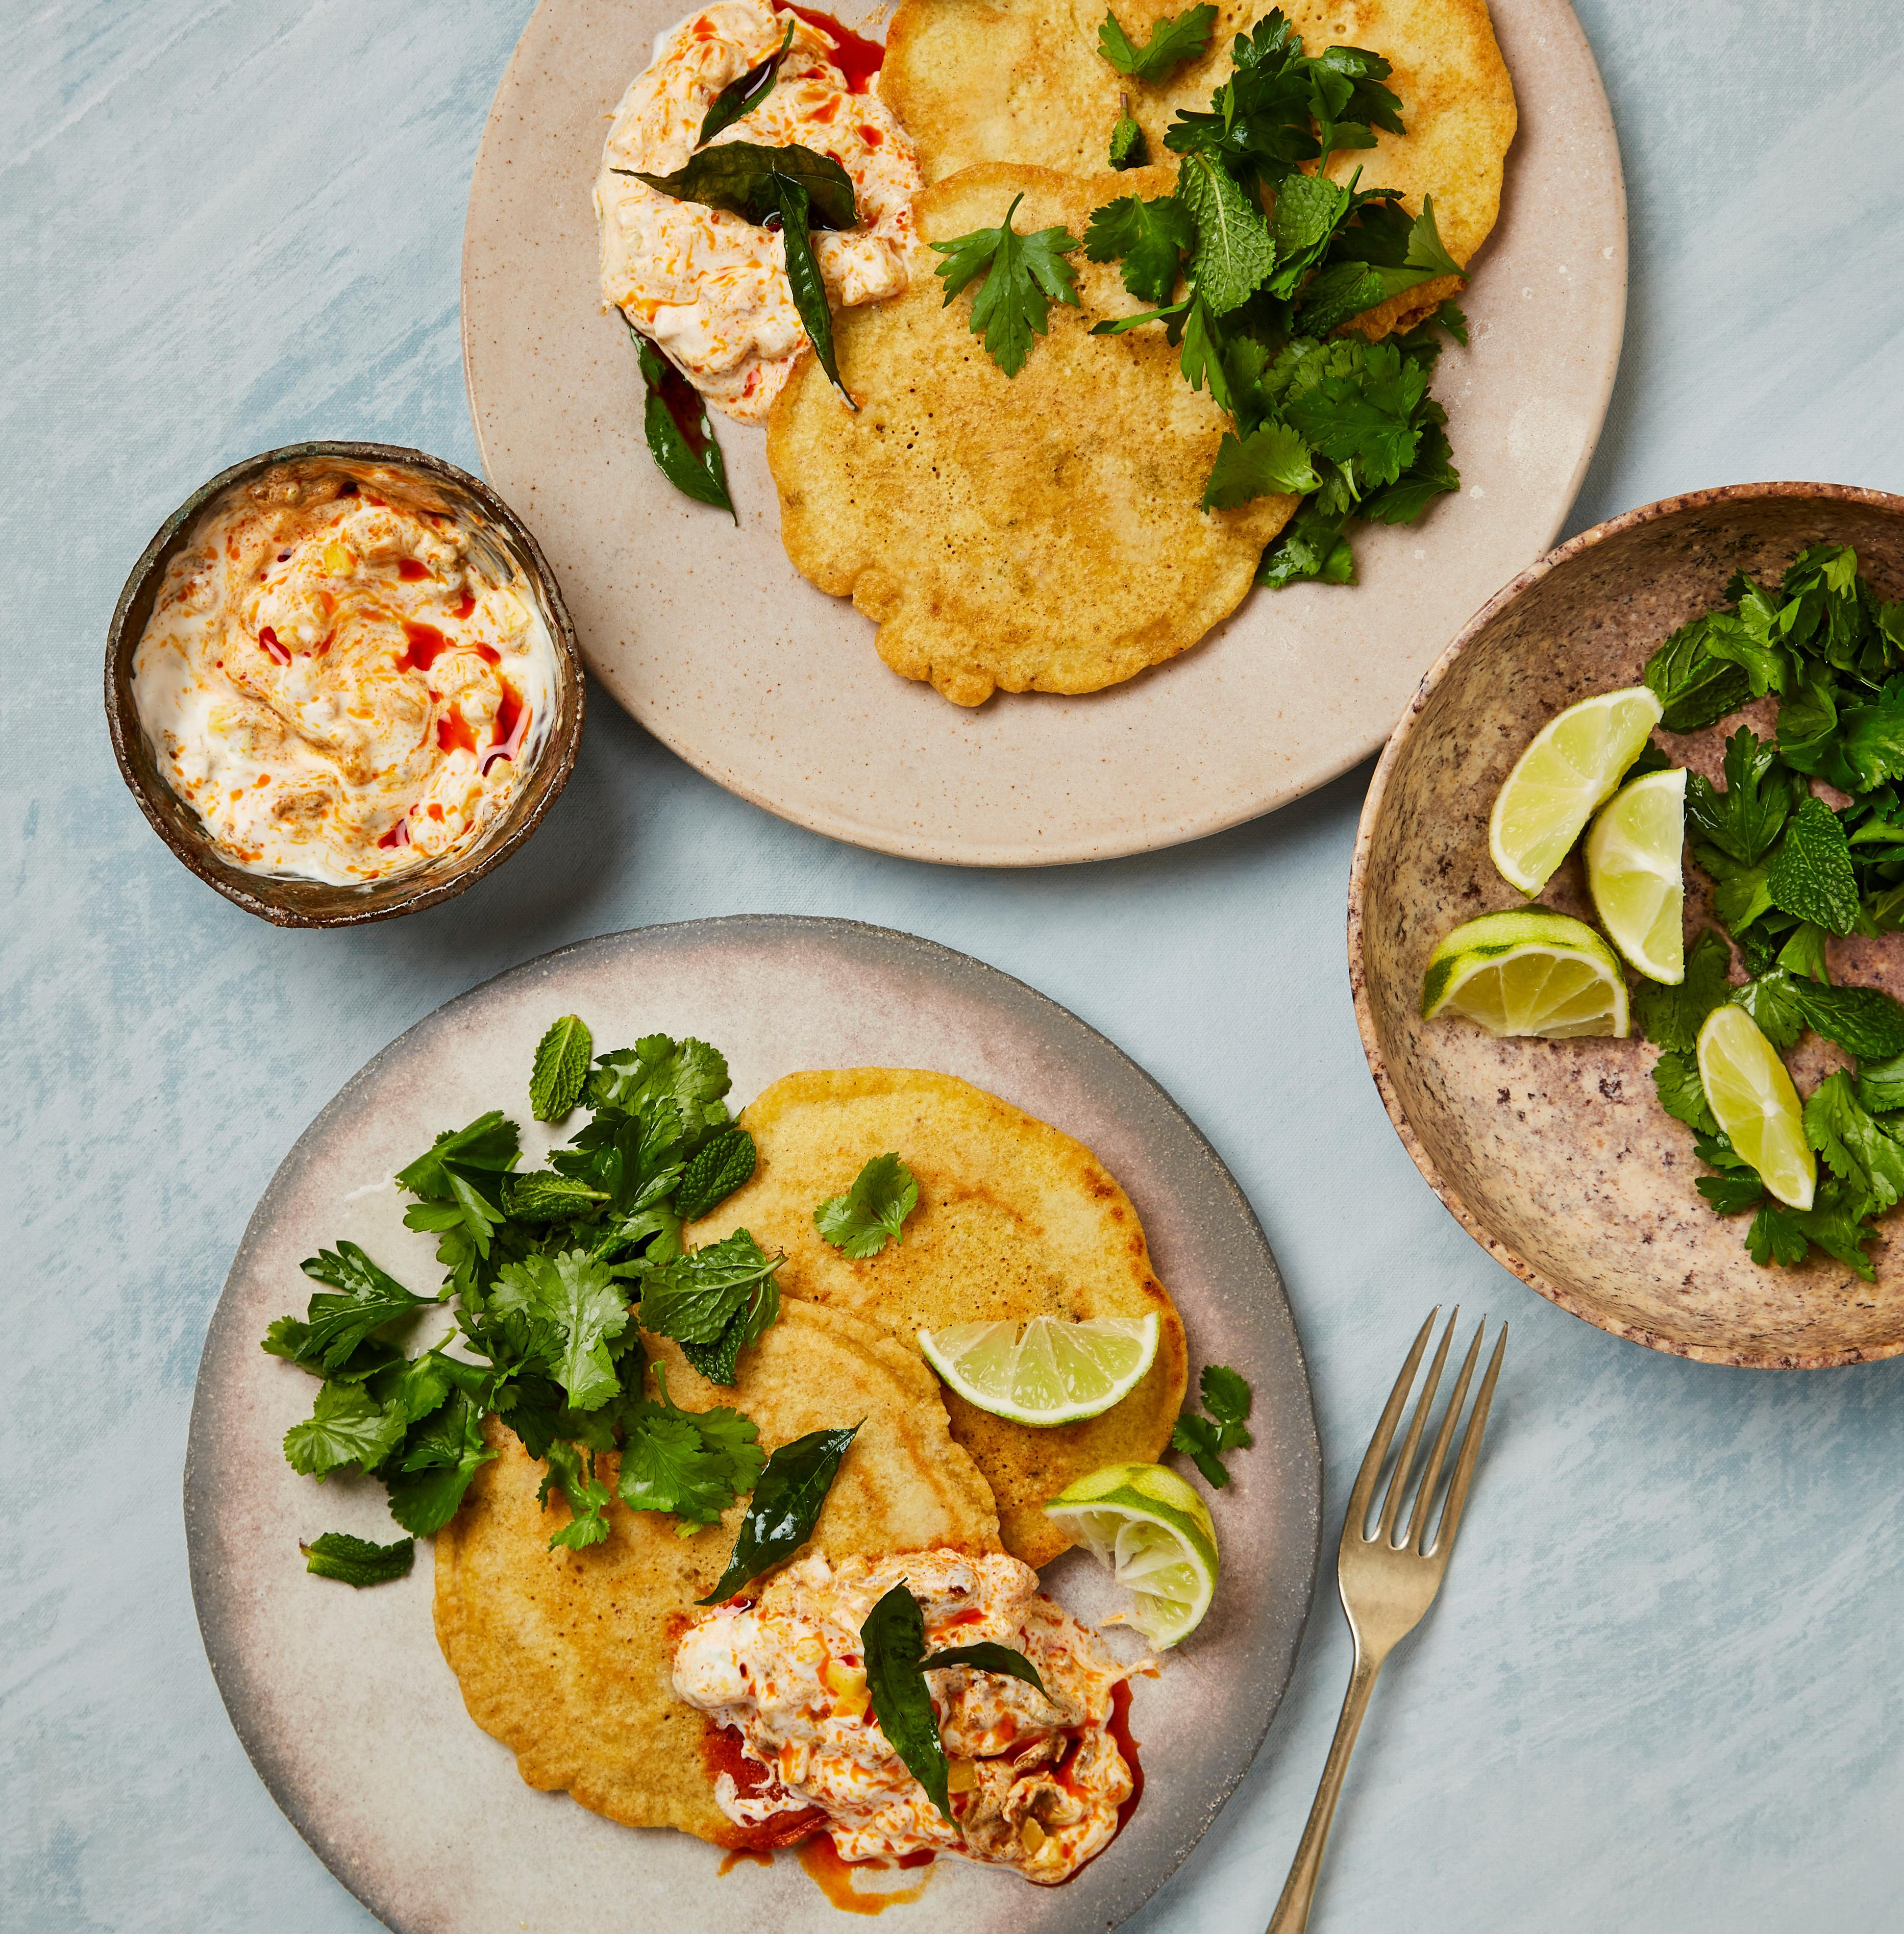 Yotam Ottolenghi's gluten-free recipes: chickpea pancakes, fish fritters, berbere ratatouille